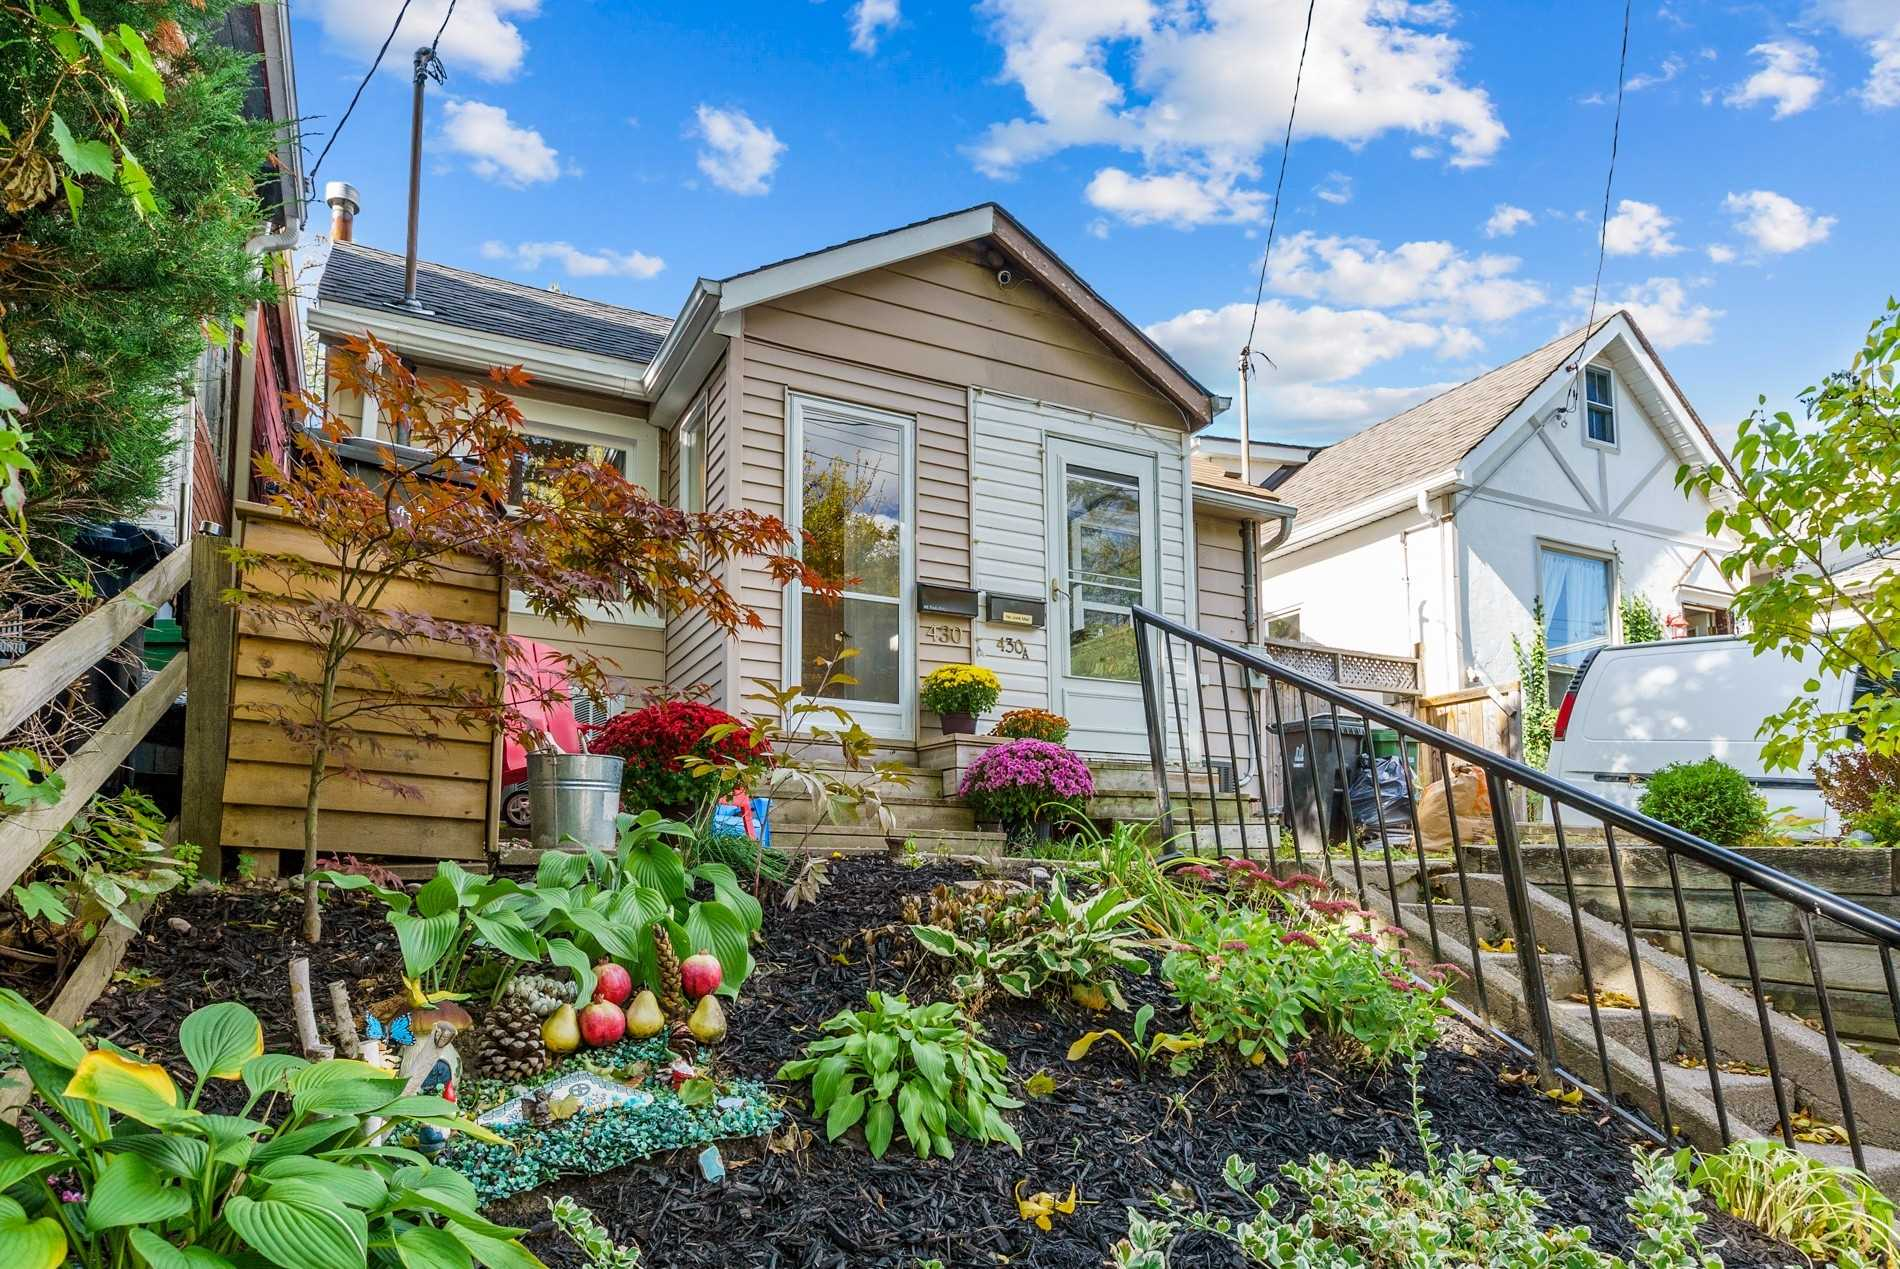 430 Woodfield Rd, Toronto, Ontario M4L2X3, 2 Bedrooms Bedrooms, 5 Rooms Rooms,1 BathroomBathrooms,Semi-detached,For Sale,Woodfield,E4950295